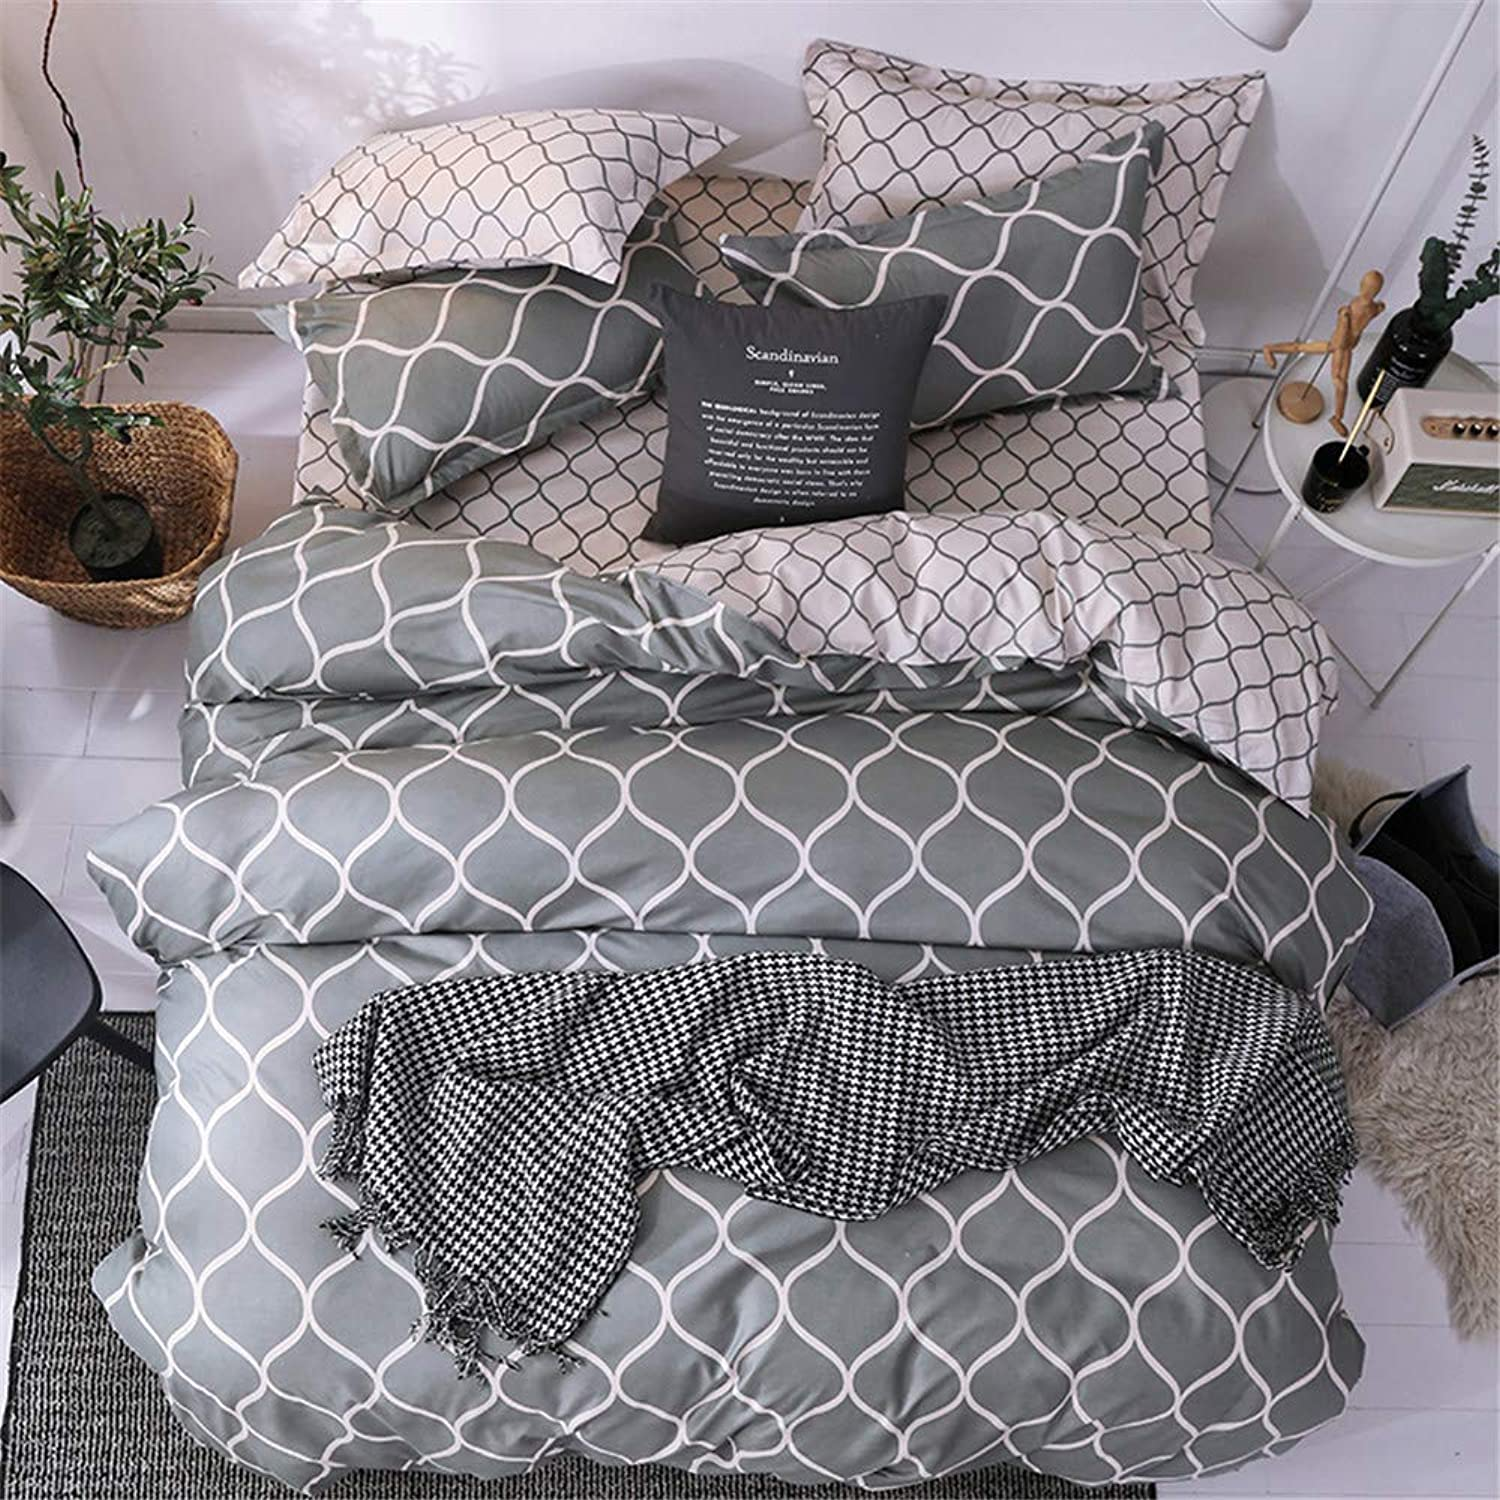 Luofanfei Geometric Duvet Bedding Cover Set Twin Duvet Sets for Boys Girls Twin Size Comforter Cover 3 PC Teens Quilt Duvet Cover Twin with 2 PC Pillow Shams Collection